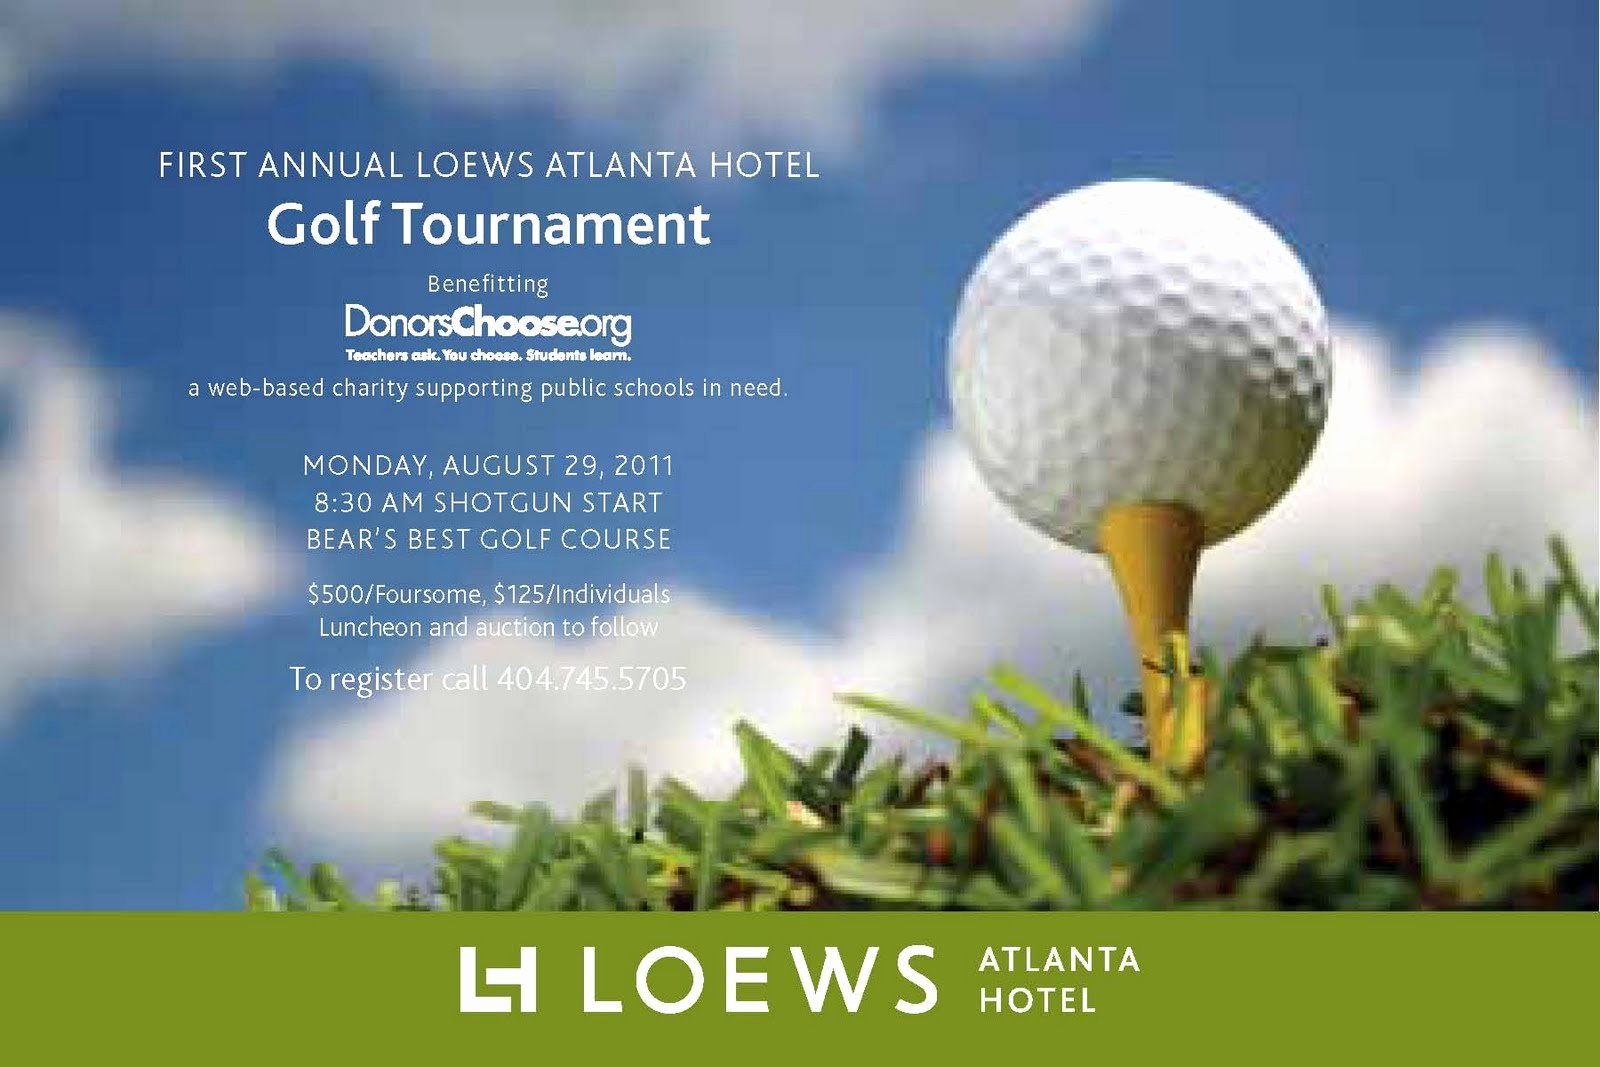 Golf tournament Flyer Template Best Of Everything Midtown atlanta Join Loews atlanta Hotel for